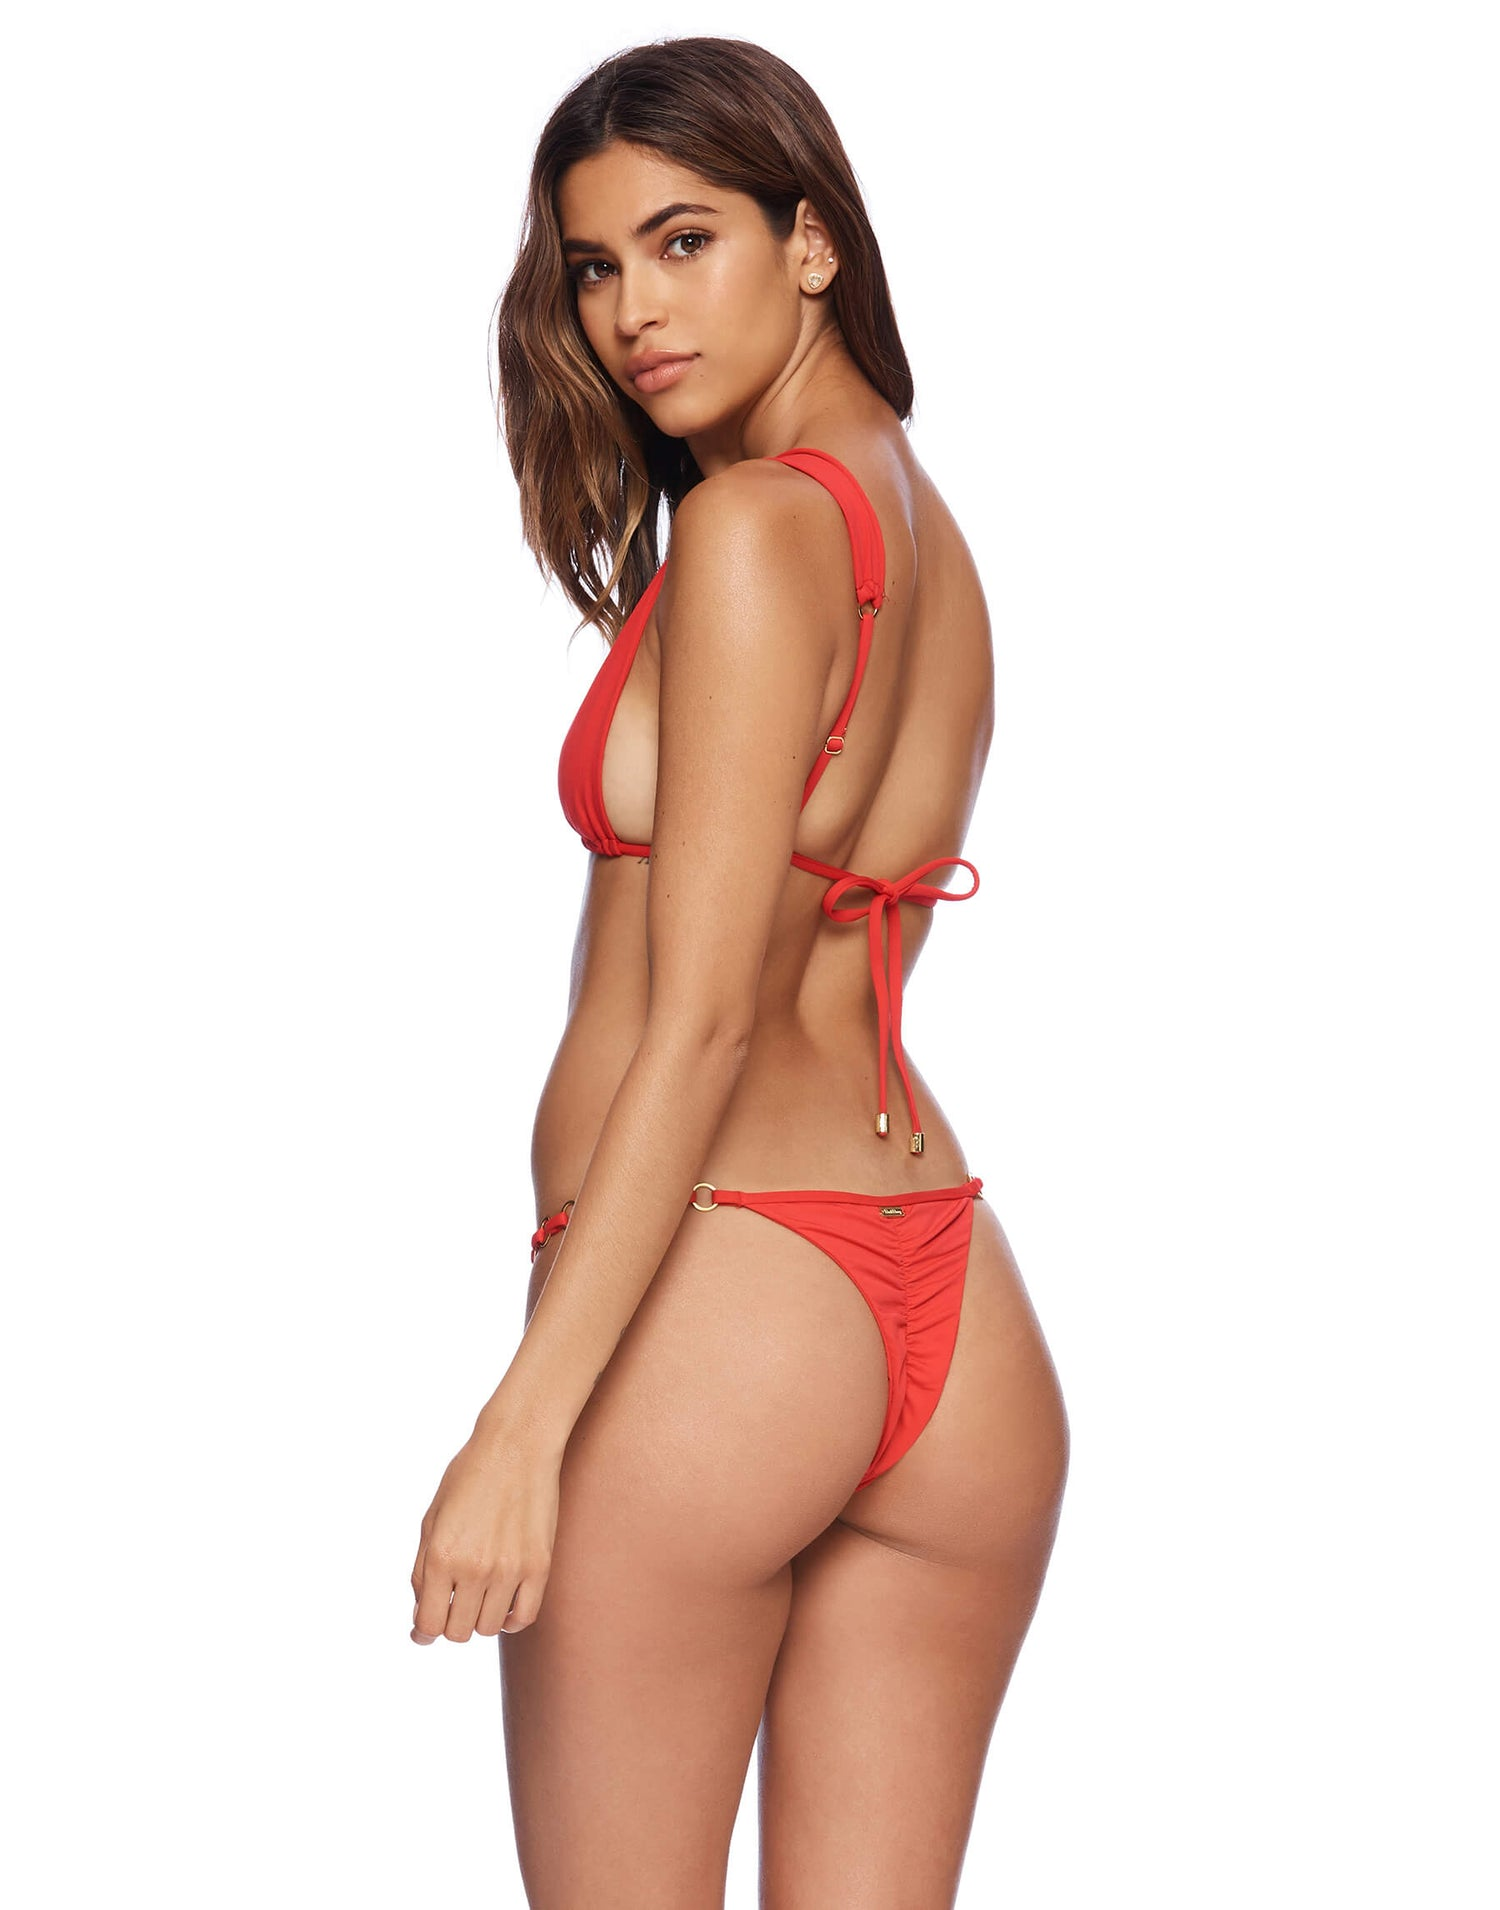 extra skimpy bikini bottom in red